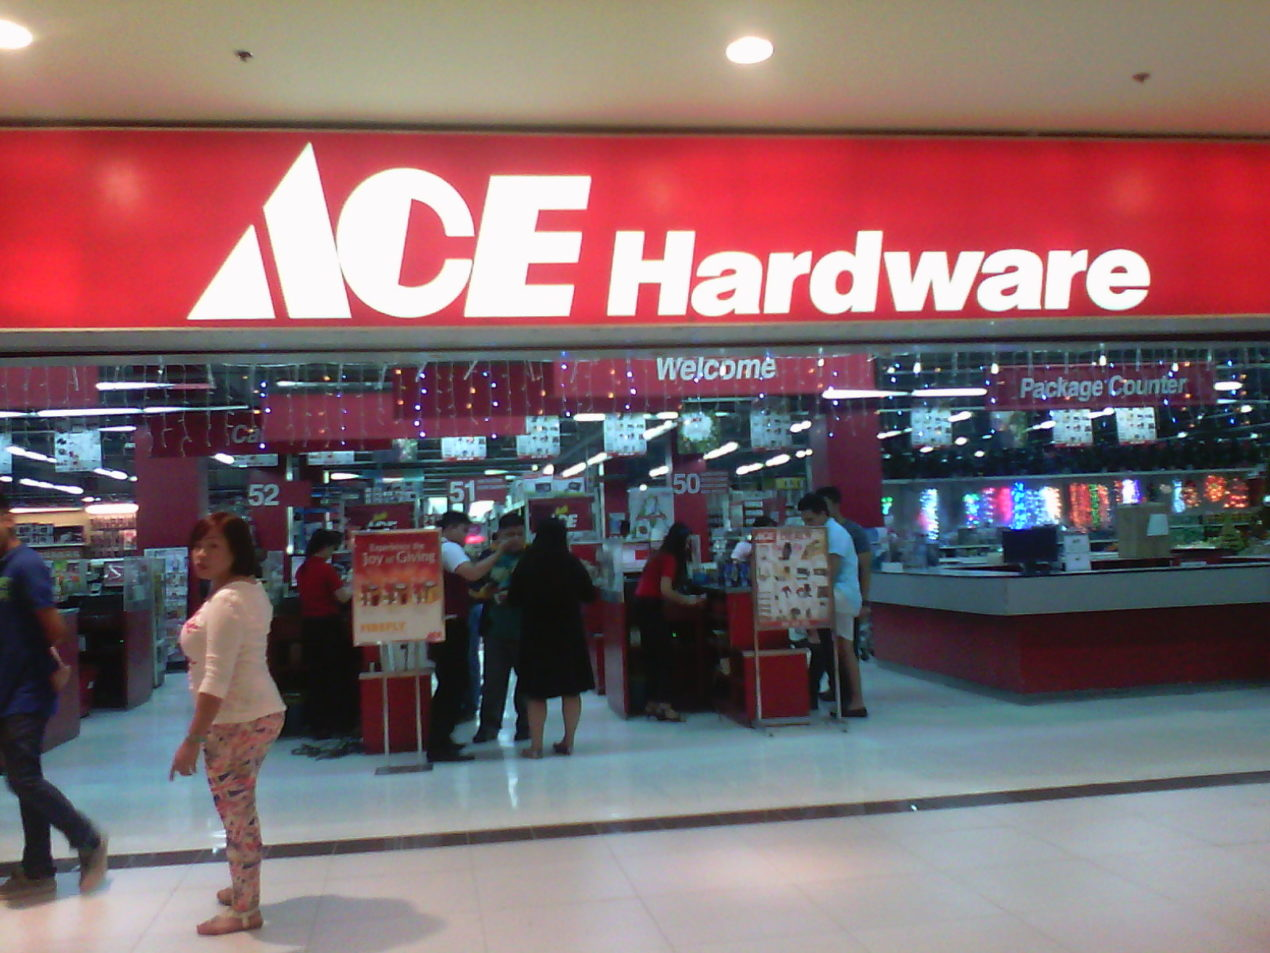 jobs for felons, company profile, Ace Hardware, hardware store